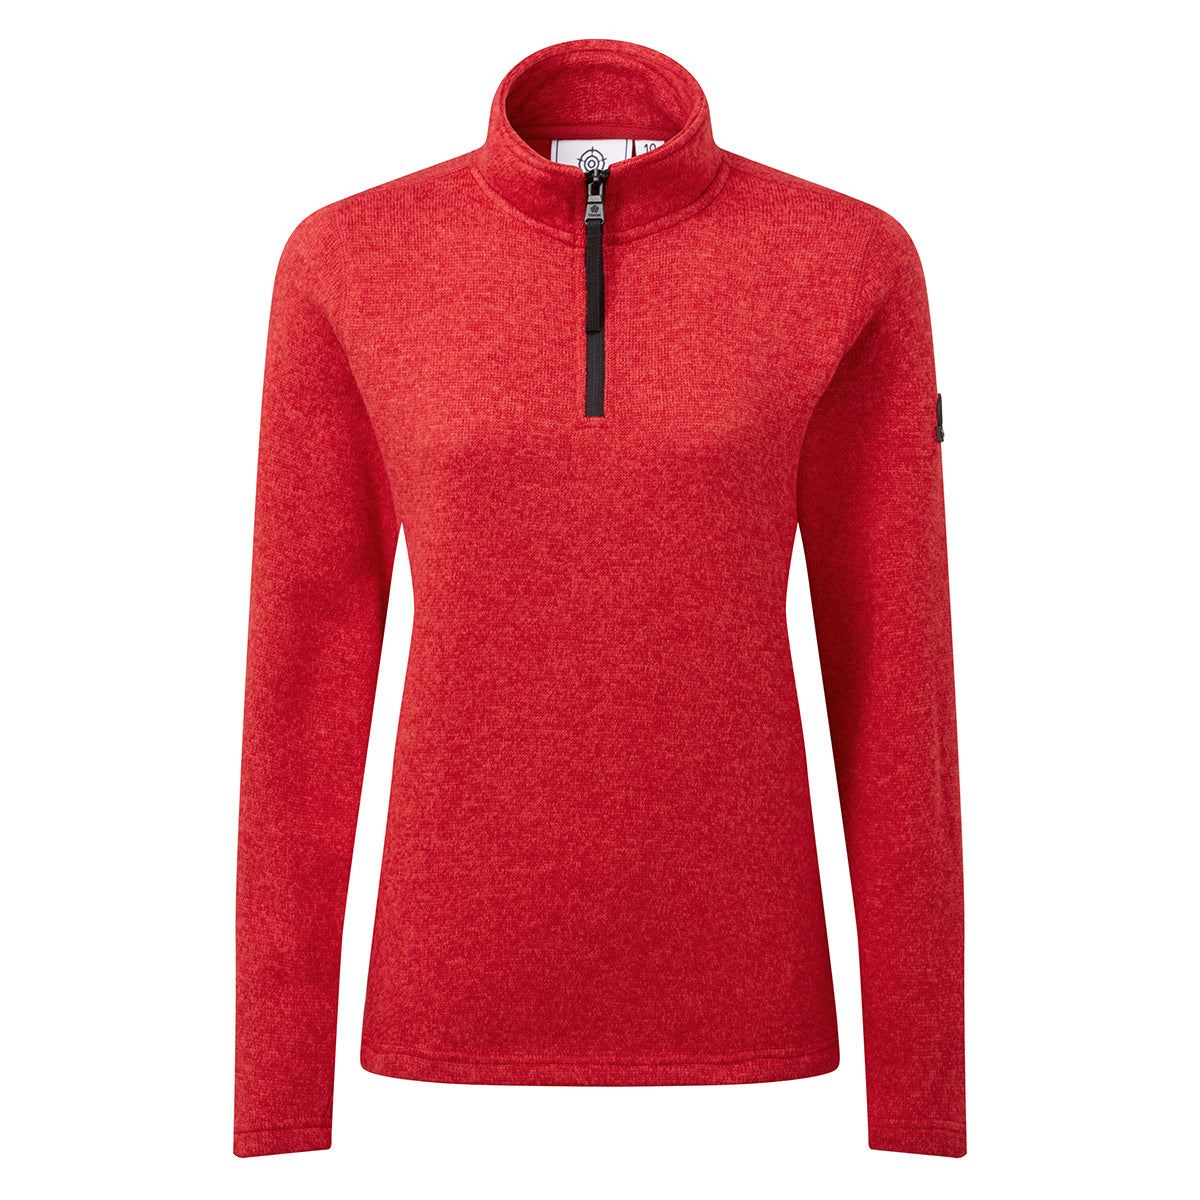 Monza Womens Knitlook Fleece Zip Neck - Rouge Red Marl image 4